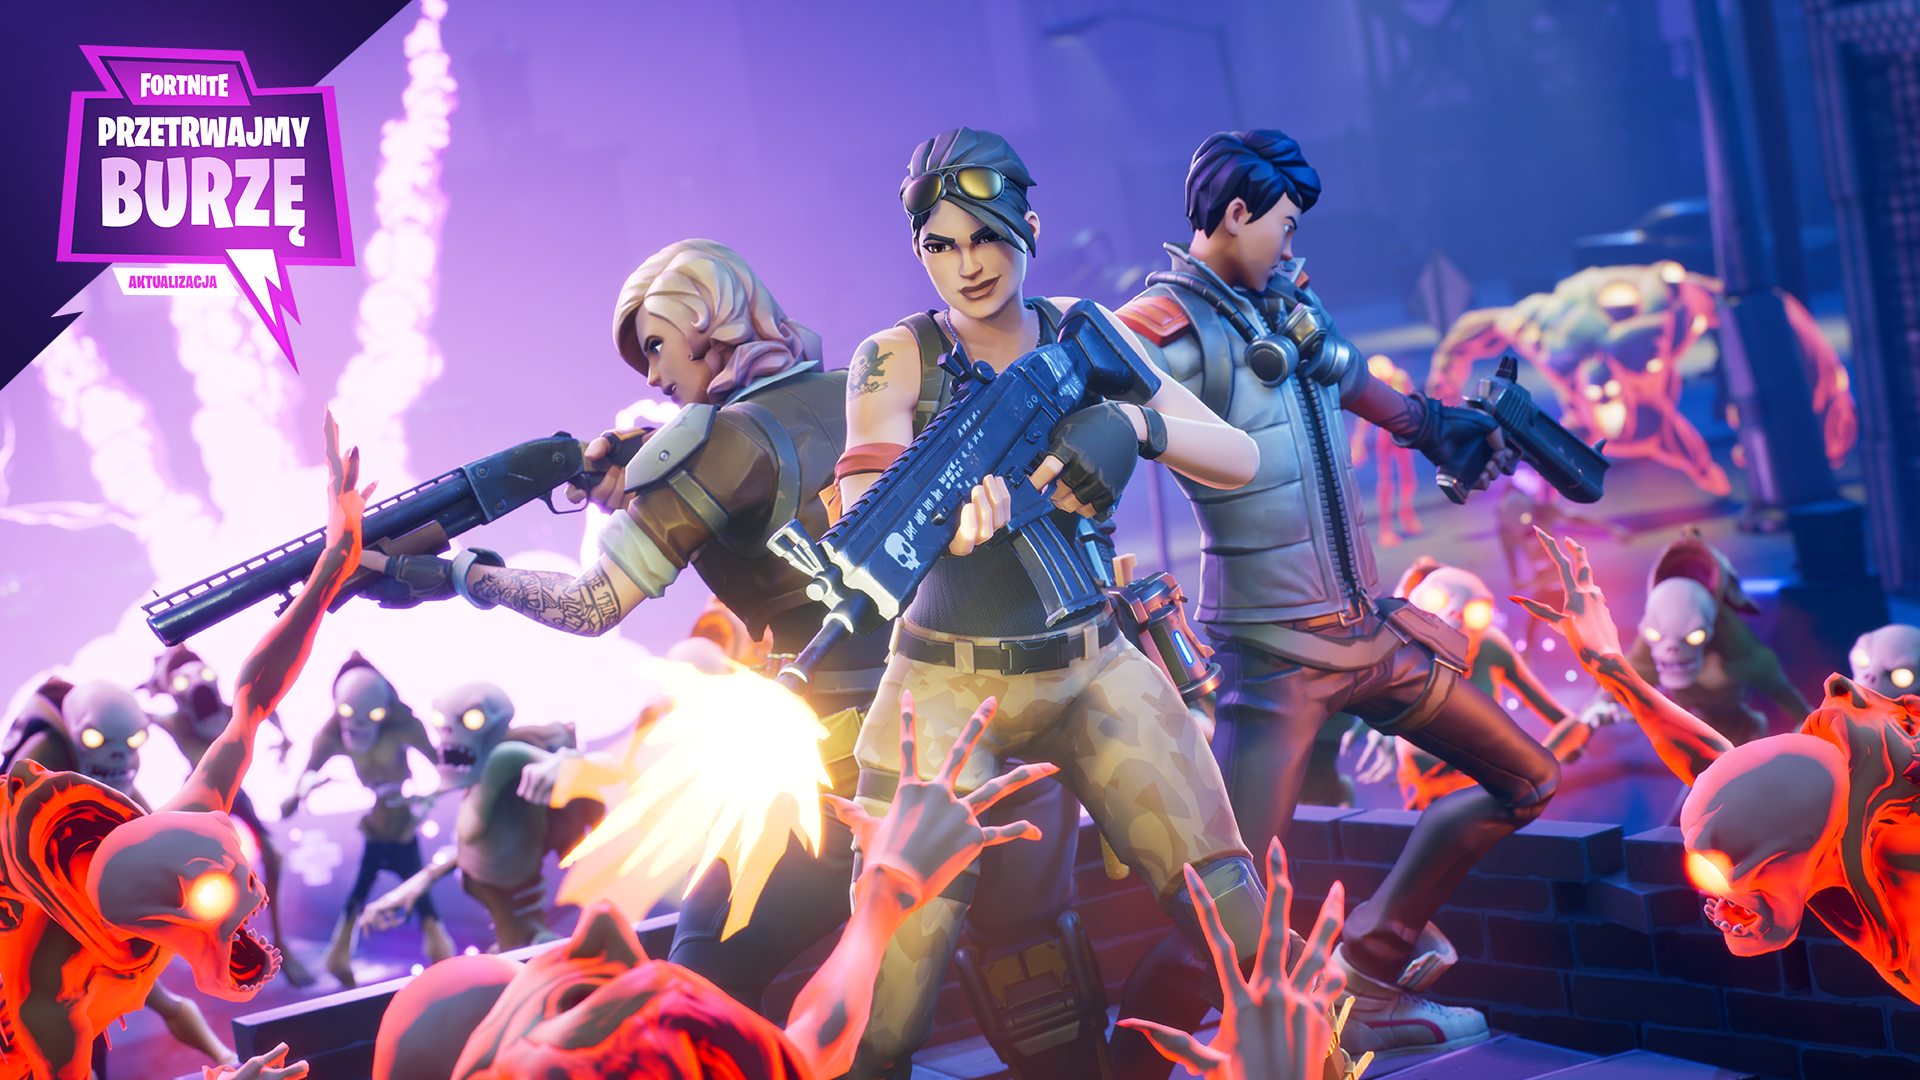 Fortnite%2Fblog%2Fsurvive-the-storm---release-notes%2FPL_Storm-Zone-1920x1080-220a795be1ee301f43fc57785a86bf86486ef60d